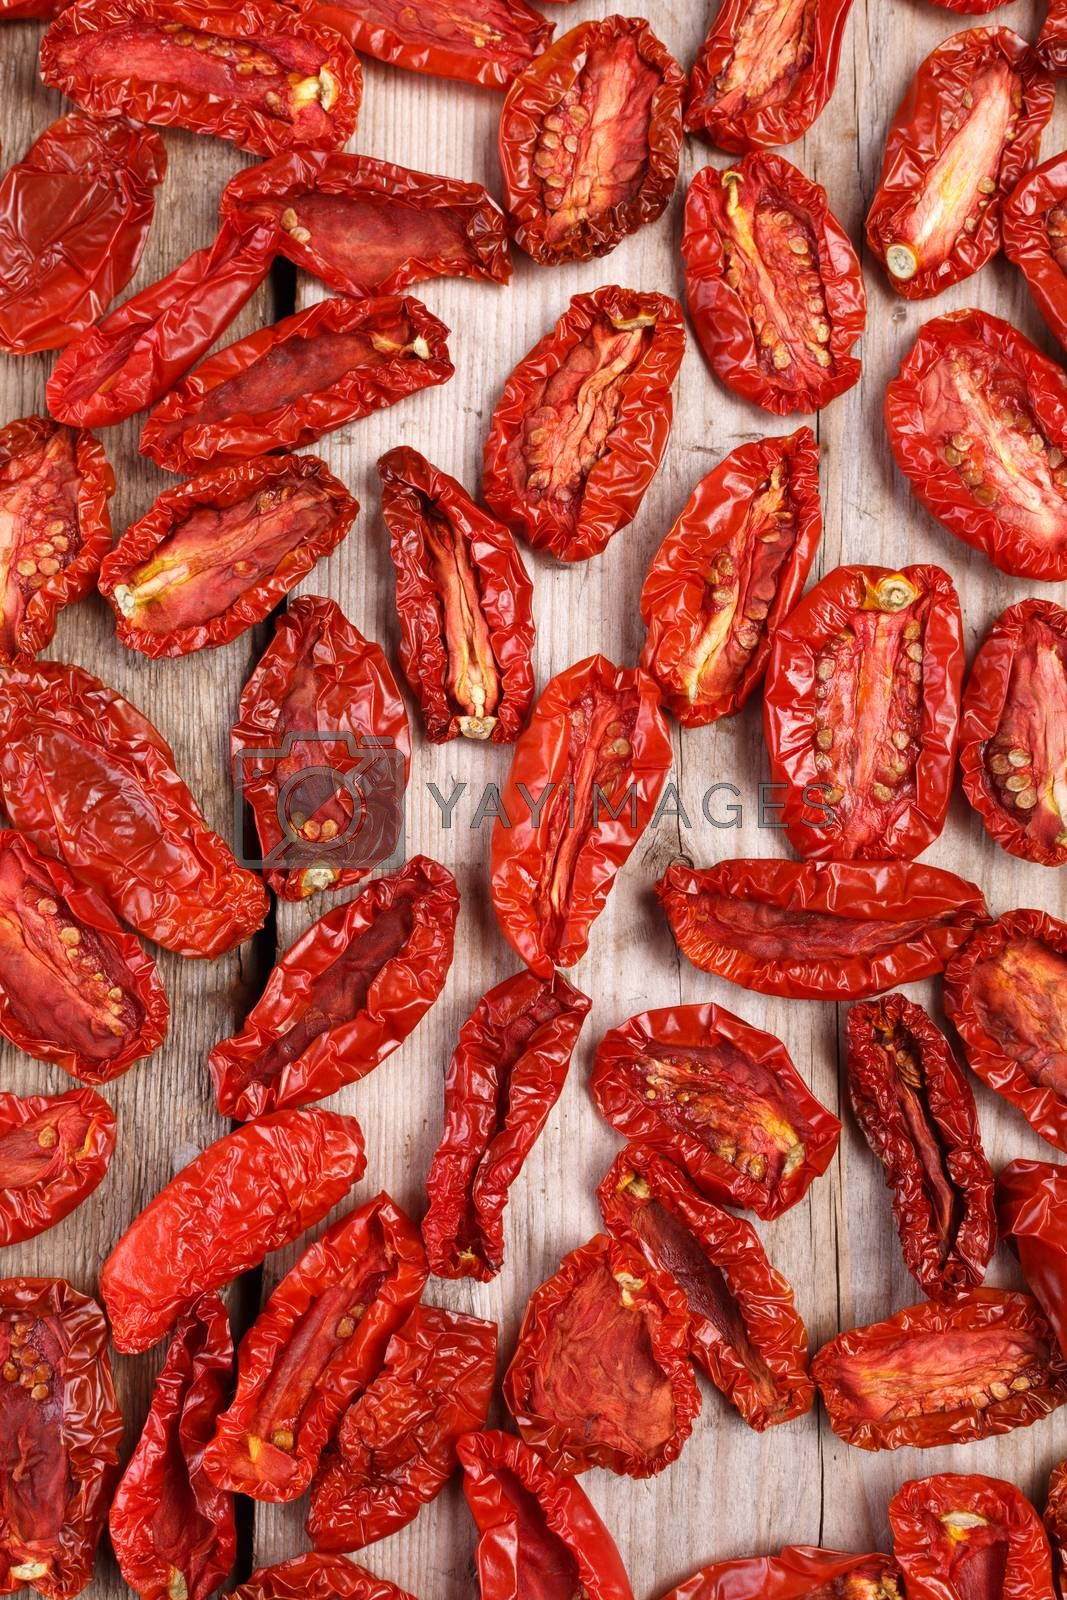 Sun dried tomatoes on wooden backdrop